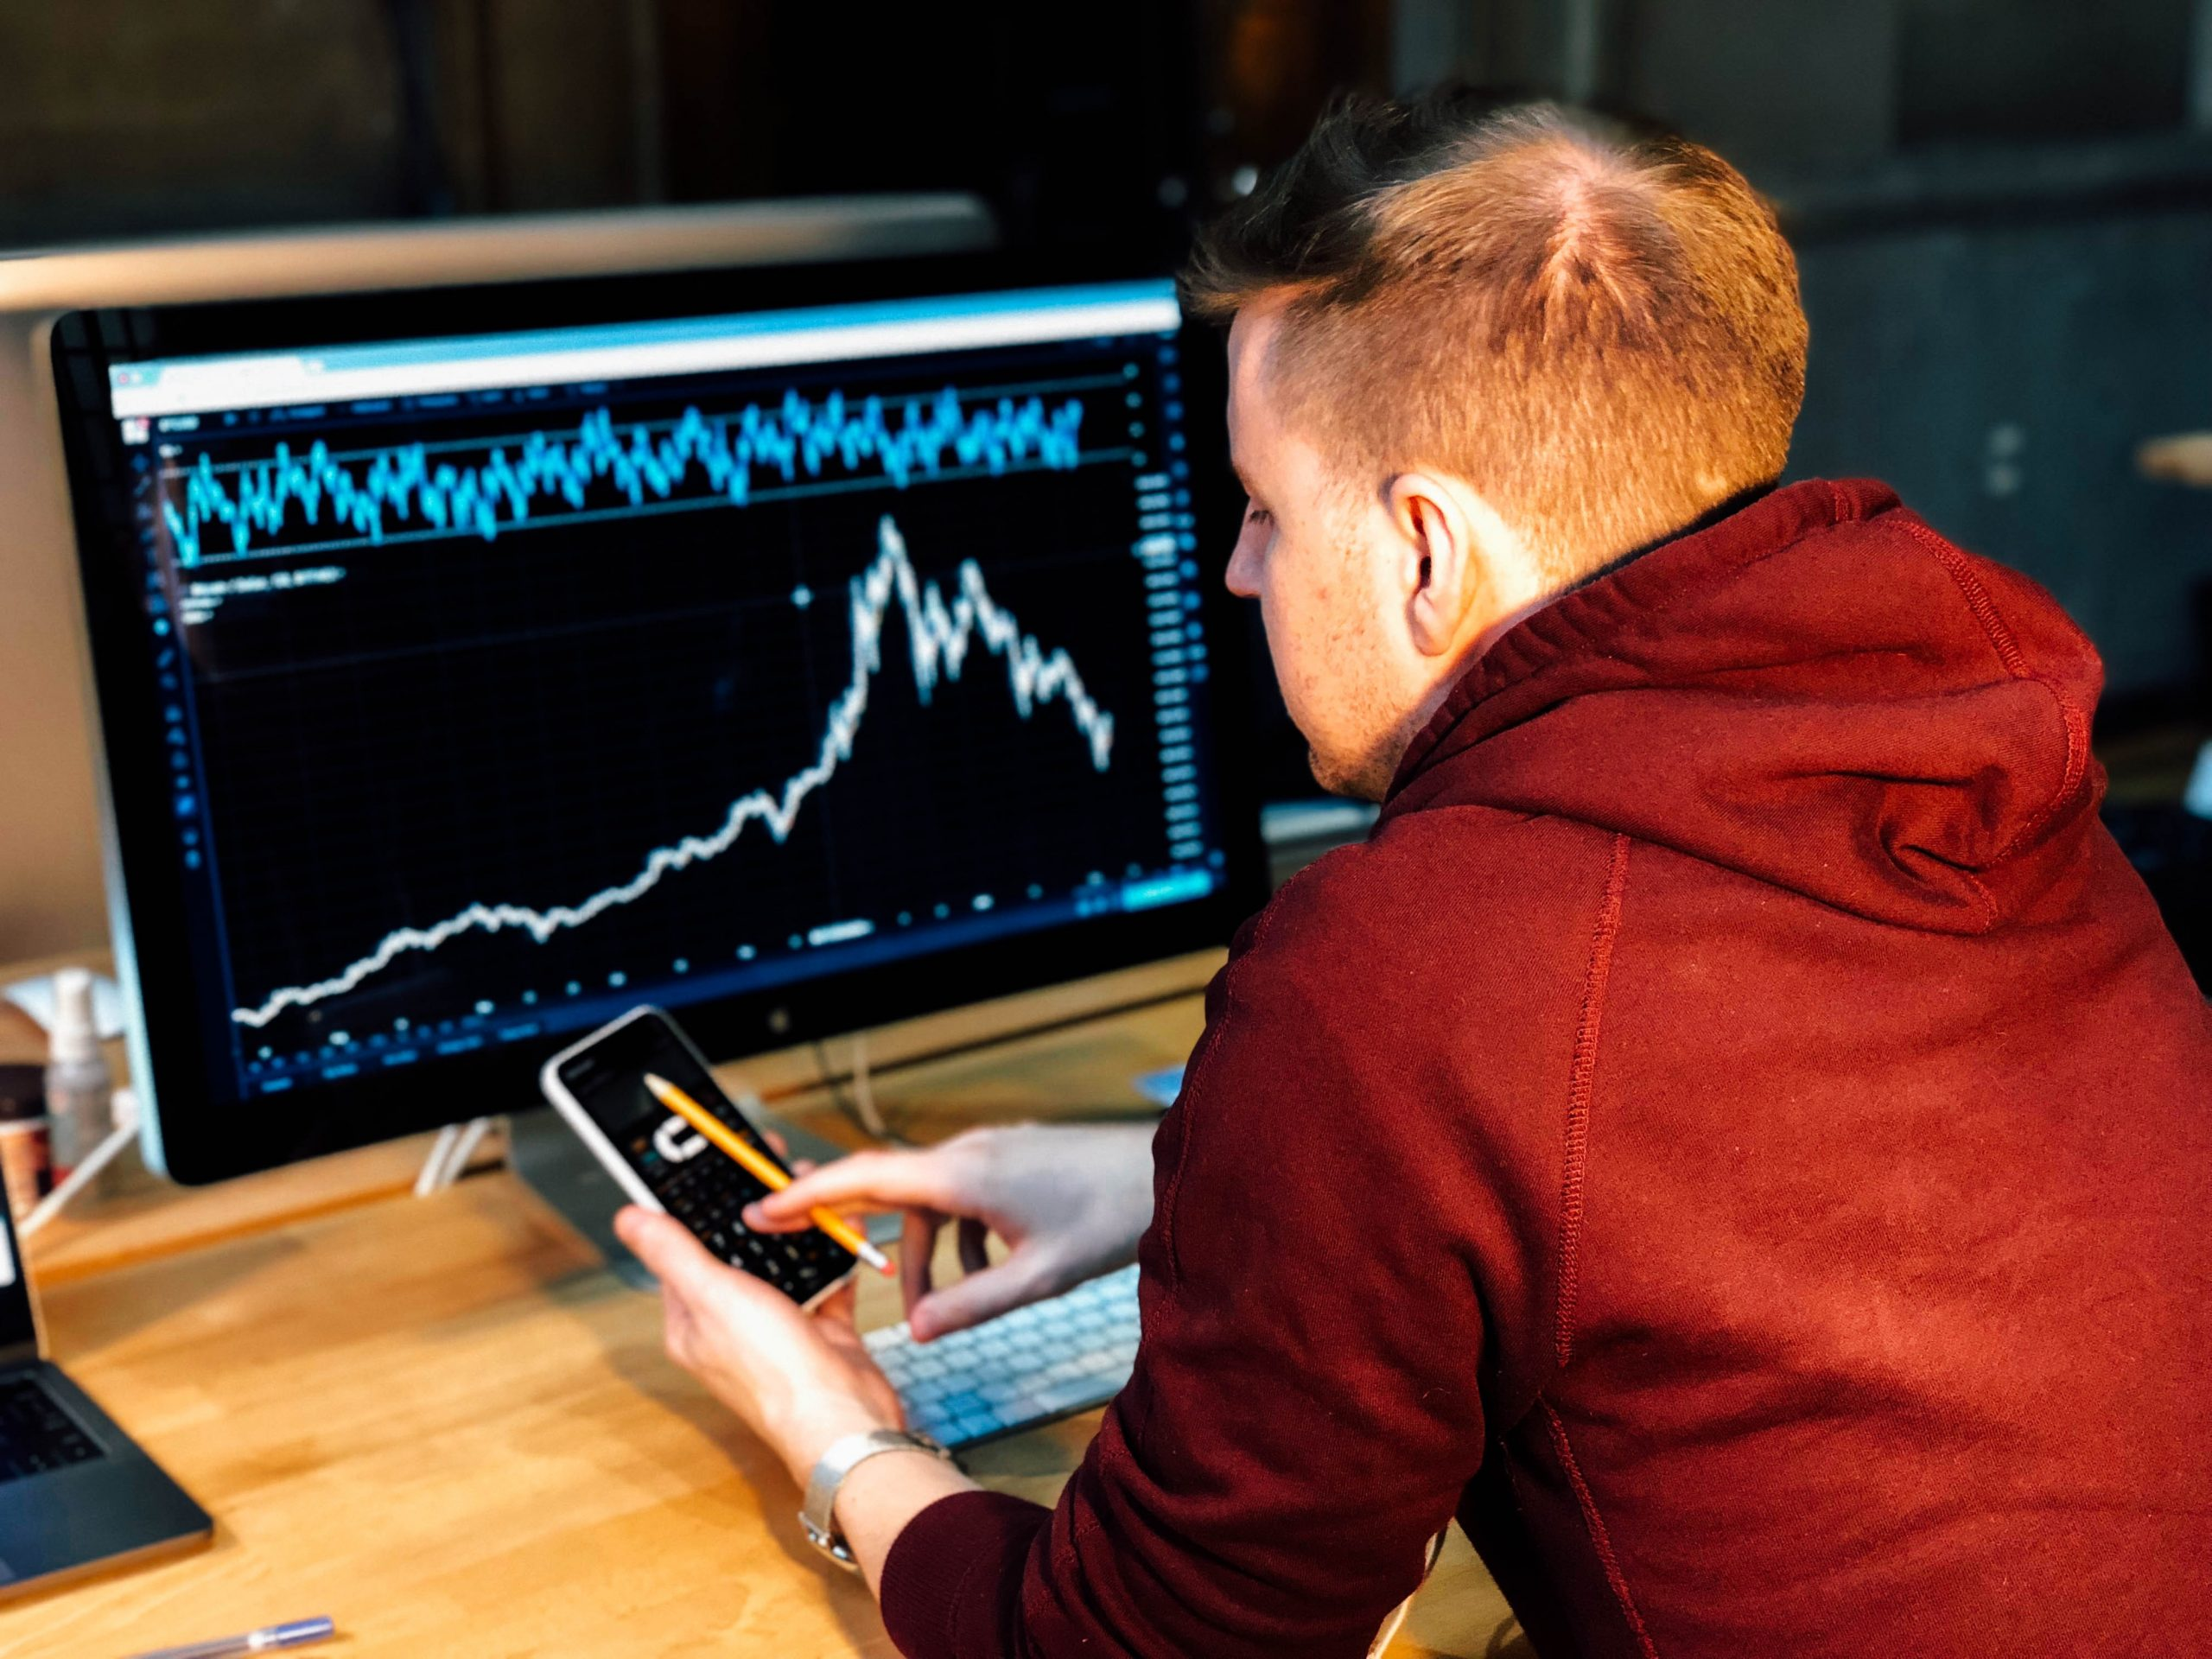 Man sitting in front of a screen with stock indices